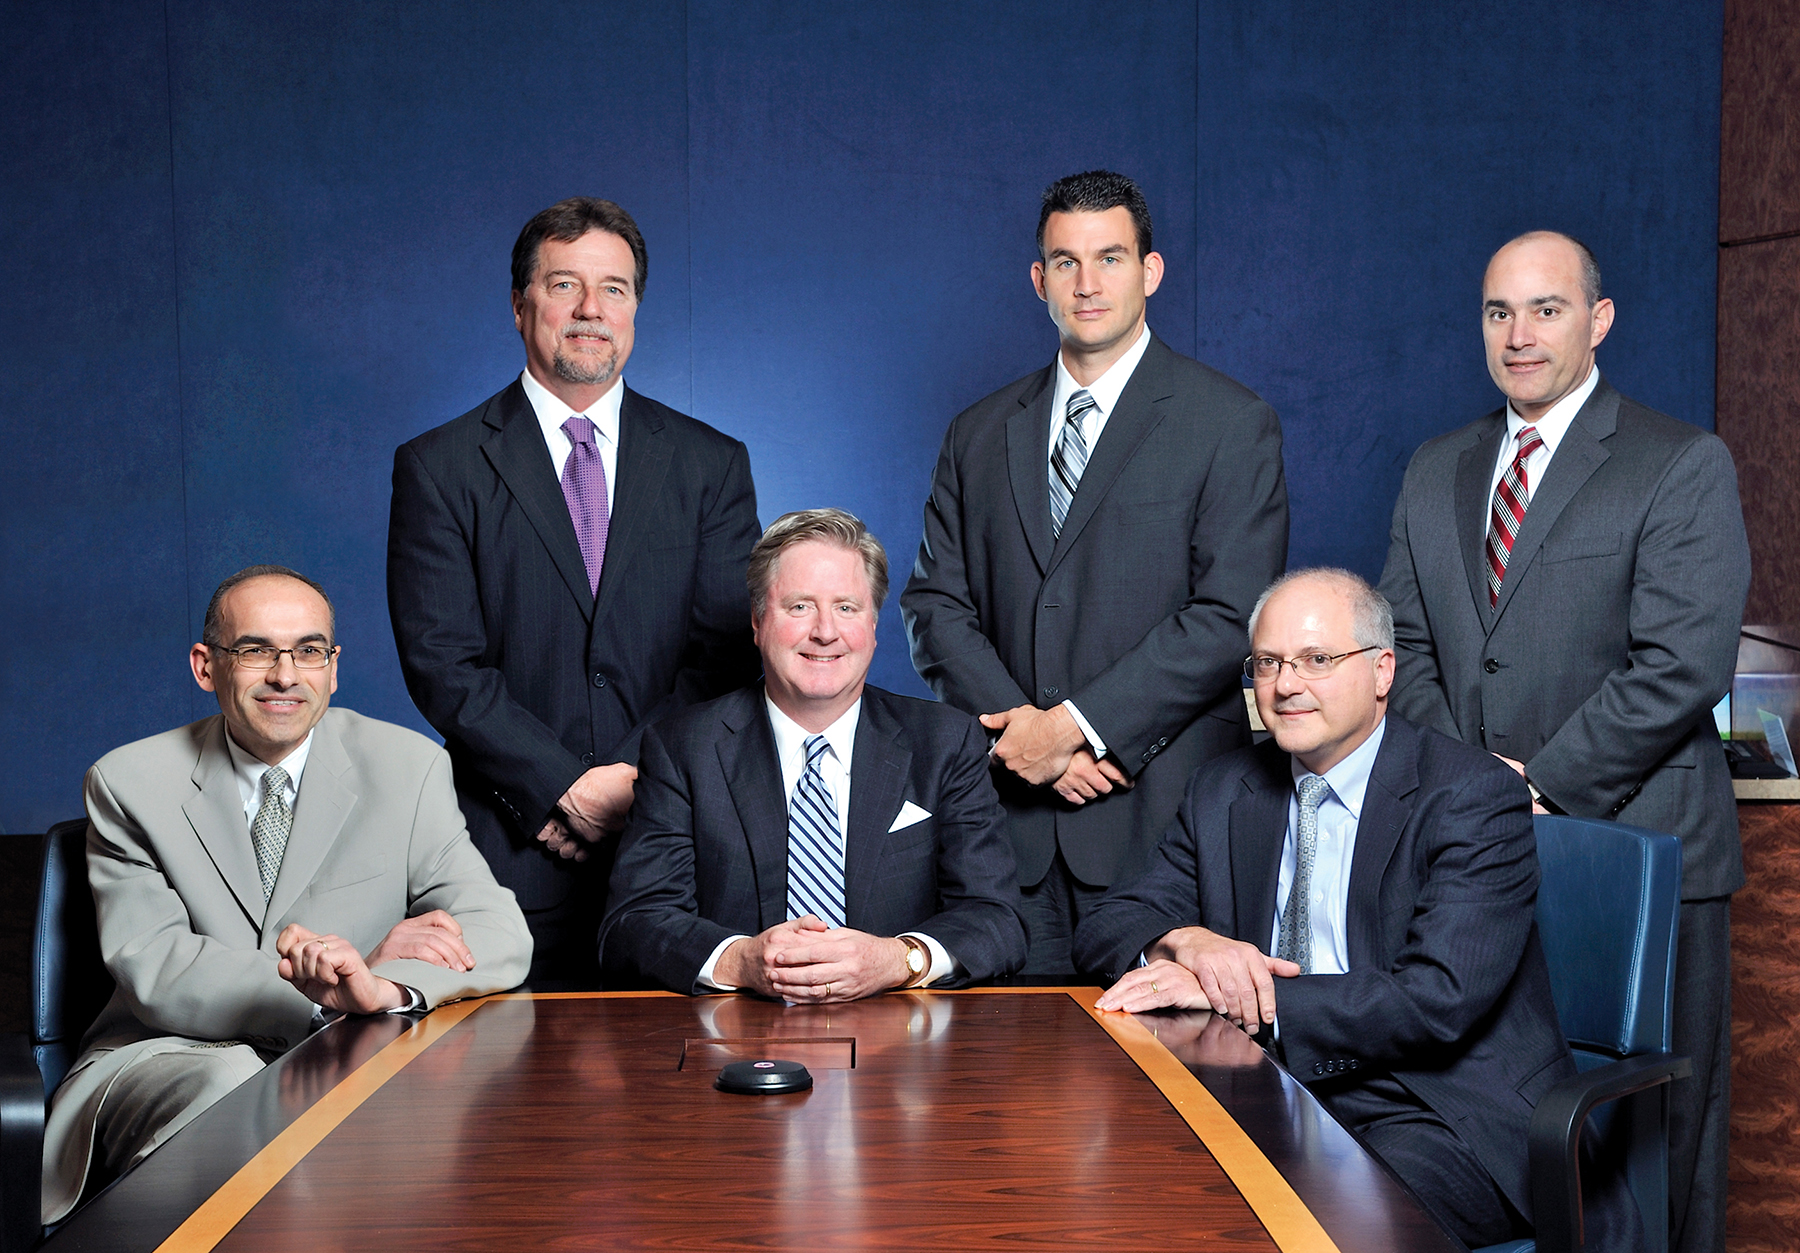 bond schoeneck attorneys.jpg